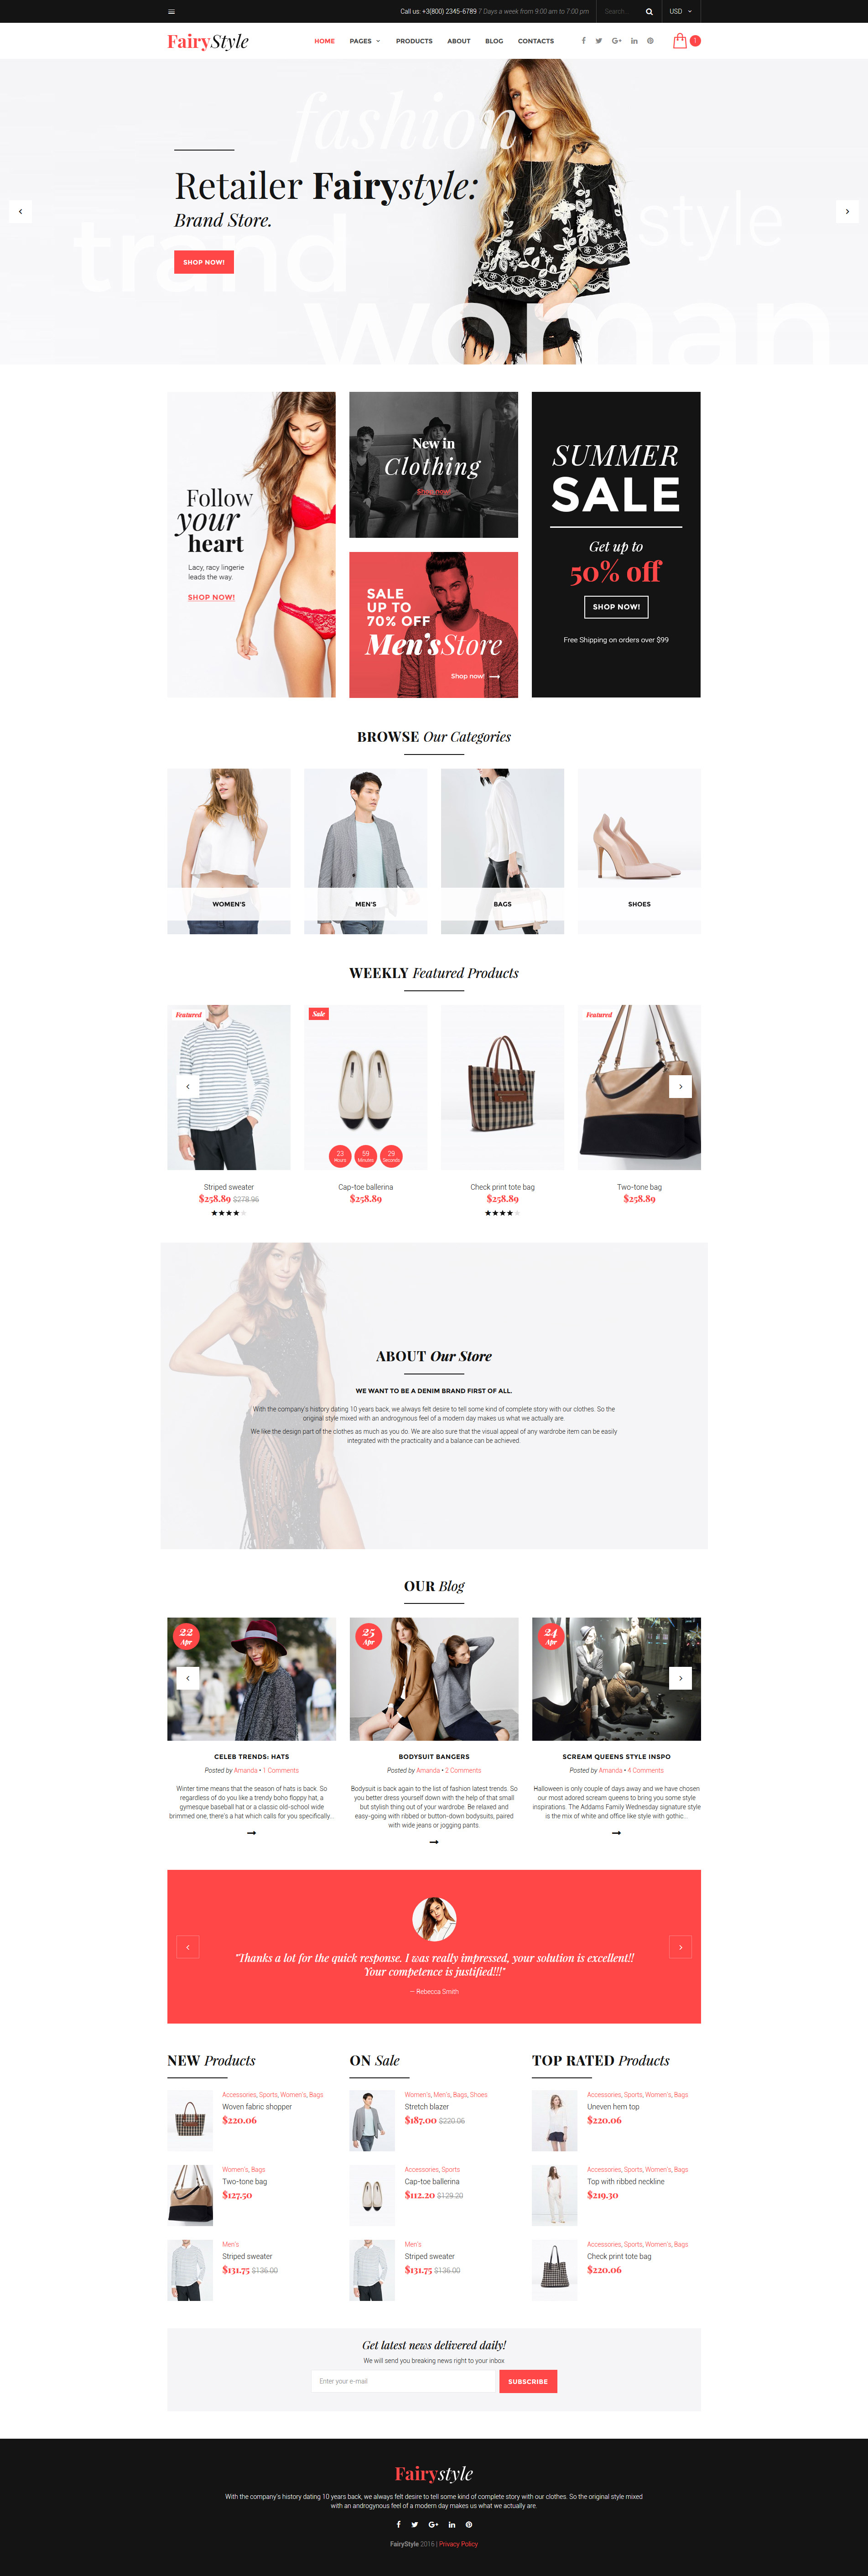 Free website templates for free download about (2,503) 32